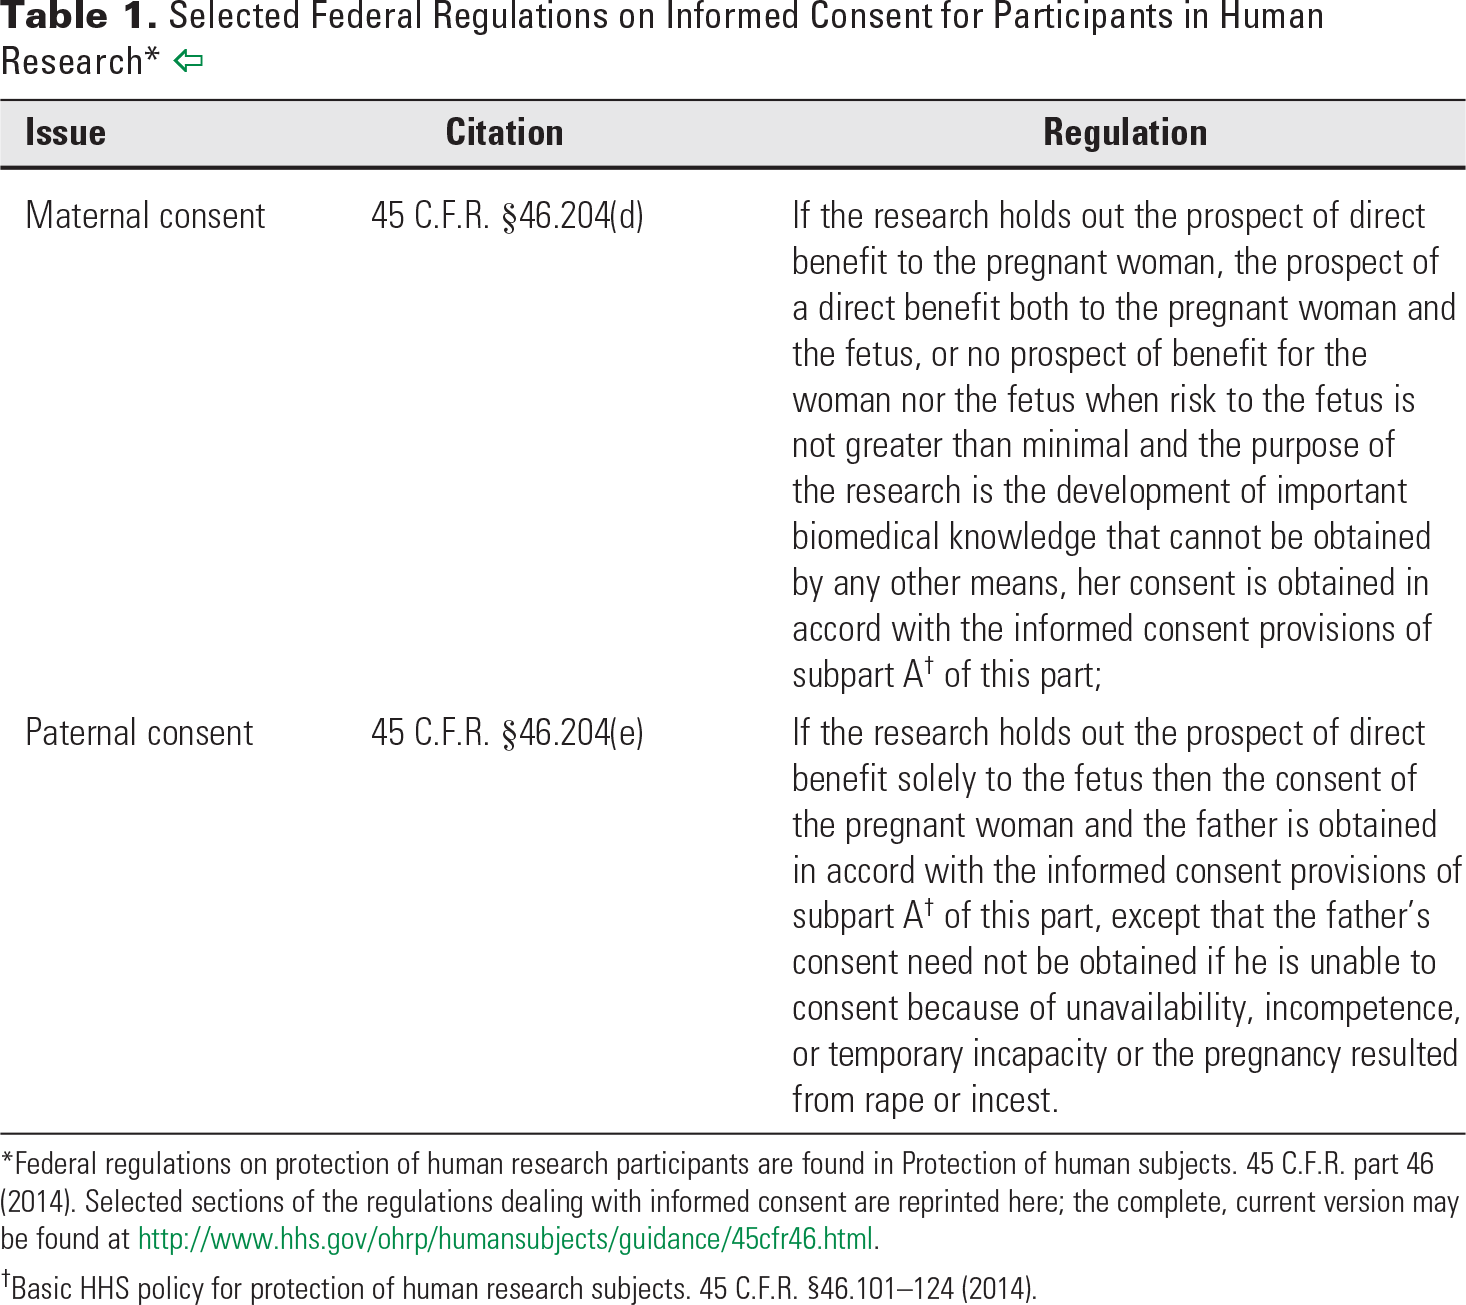 Table 1. Selected Federal Regulations on Informed Consent for Participants in Human Research*